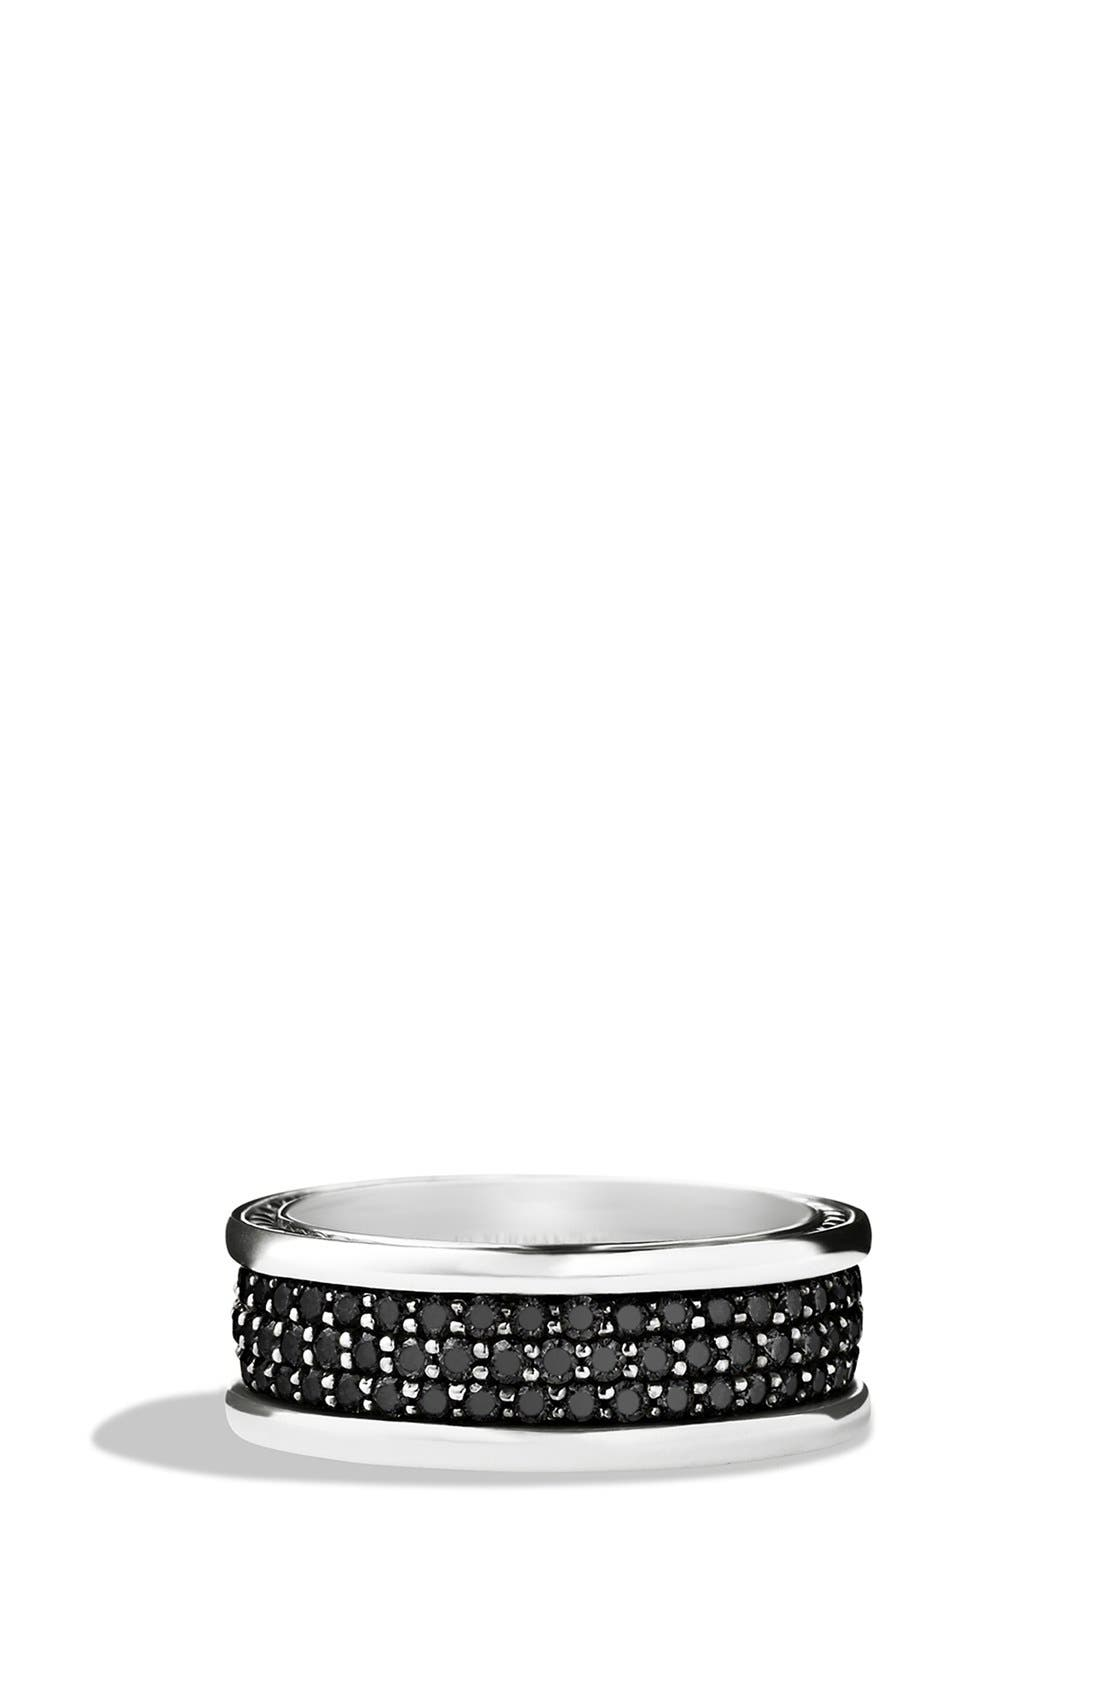 'Streamline' Band Ring with Black Diamonds,                             Main thumbnail 1, color,                             Black Diamond